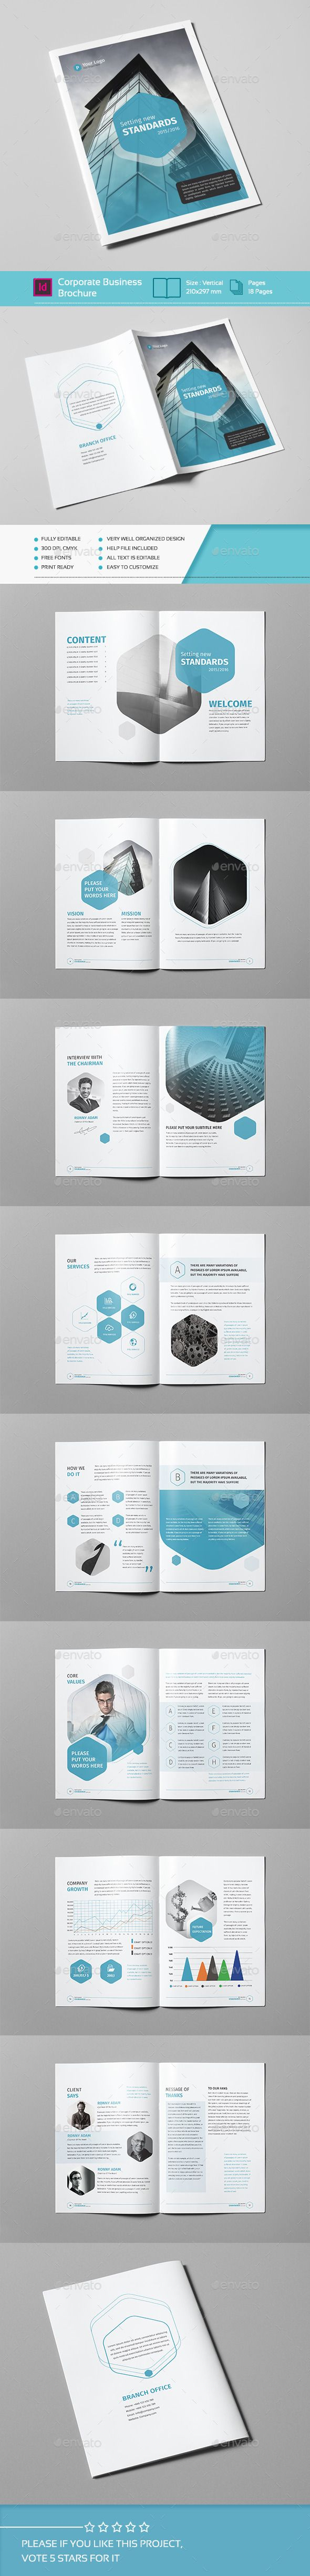 Corporate Business Brochure 18 Pages A4 Template PSD #design Download: http://graphicriver.net/item/corporate-business-brochure-18-pages-a4/13909294?ref=ksioks